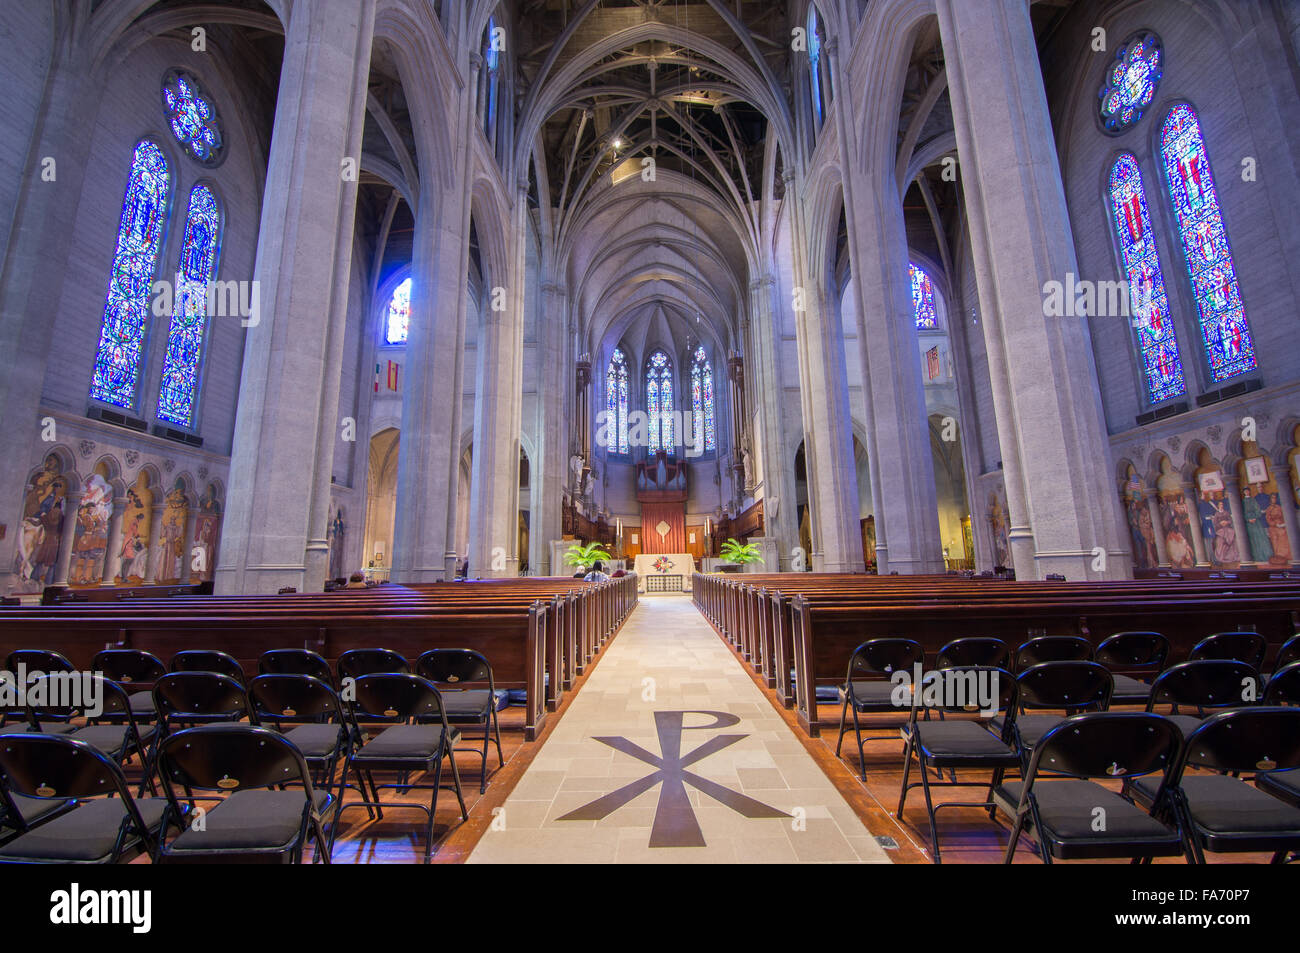 SAN FRANCISCO, CALIFORNIA - March 29, 2015: Grace Cathedral church of the Episcopal Diocese of California. - Stock Image